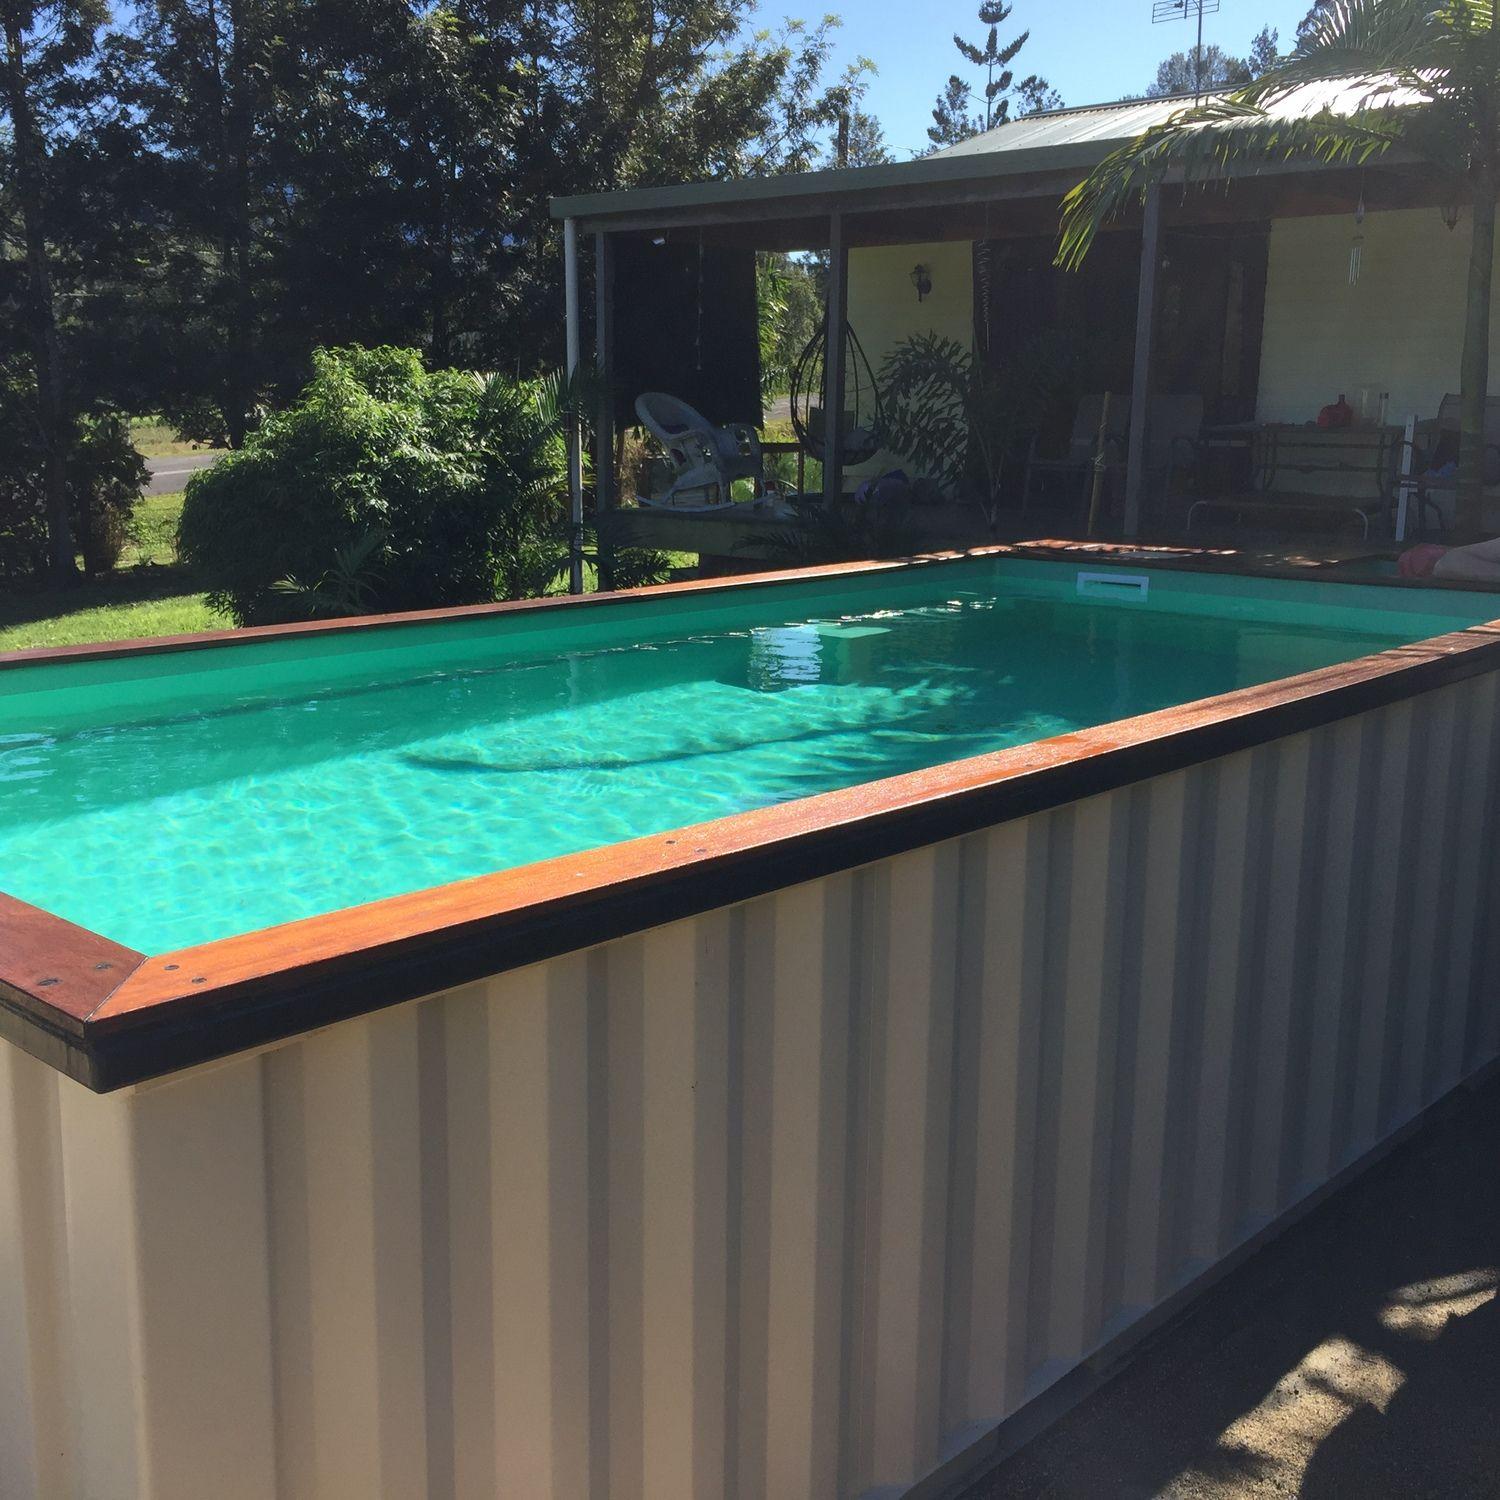 Best Kitchen Gallery: We Are A Sunshine Coast Based Pany That Manufactures Fiberglass of Shipping Container Pool on rachelxblog.com